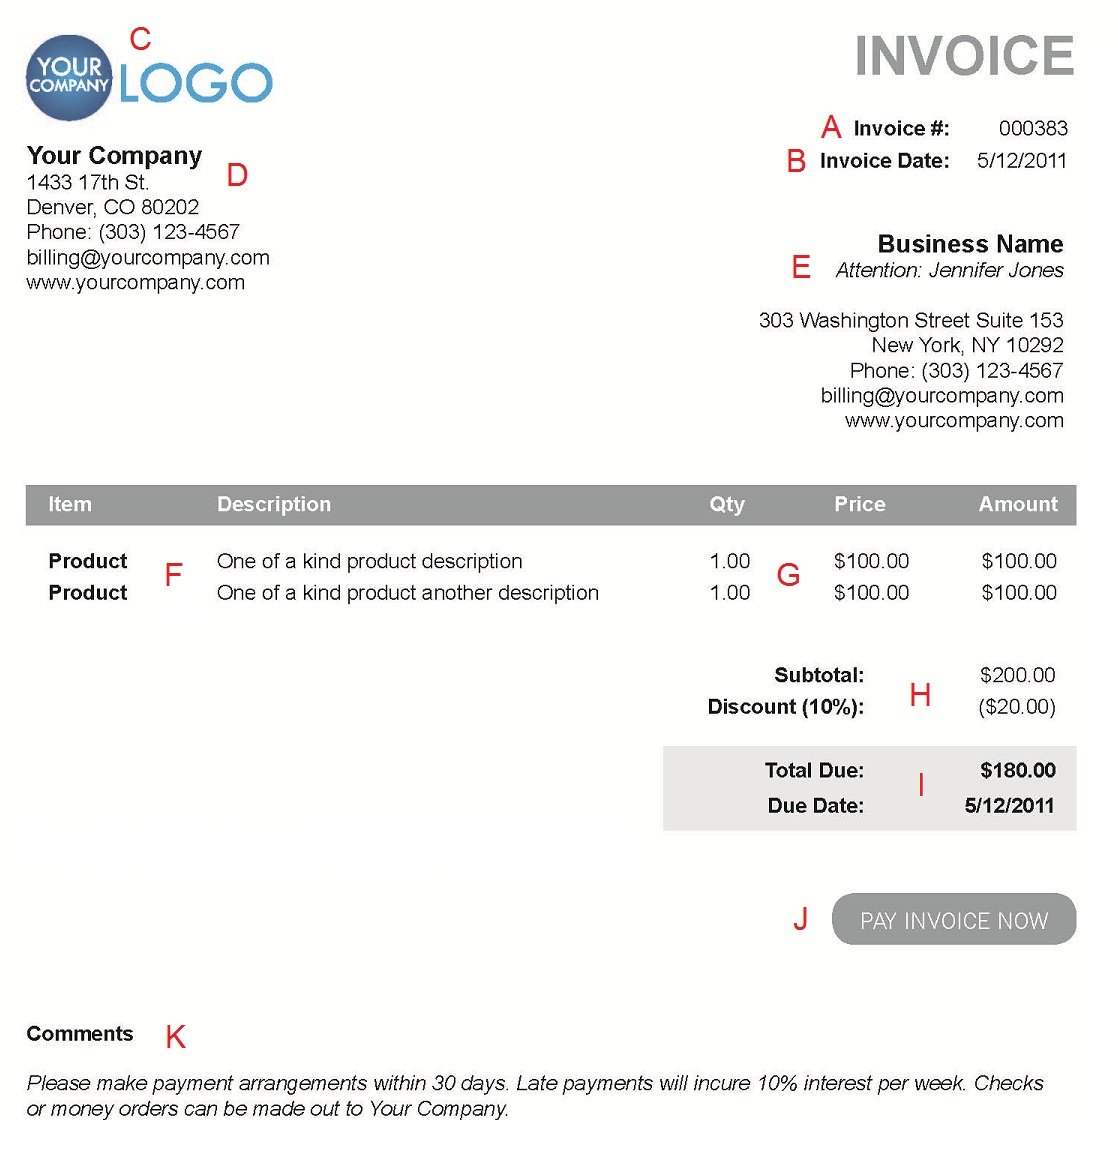 Aaaaeroincus  Remarkable The  Different Sections Of An Electronic Payment Invoice With Interesting A  With Endearing Invoice Asap Also Blank Invoice Template In Addition Free Invoice Generator And Invoice In Spanish As Well As Paypal Invoice Fee Additionally Difference Between Invoice And Bill From Paysimplecom With Aaaaeroincus  Interesting The  Different Sections Of An Electronic Payment Invoice With Endearing A  And Remarkable Invoice Asap Also Blank Invoice Template In Addition Free Invoice Generator From Paysimplecom